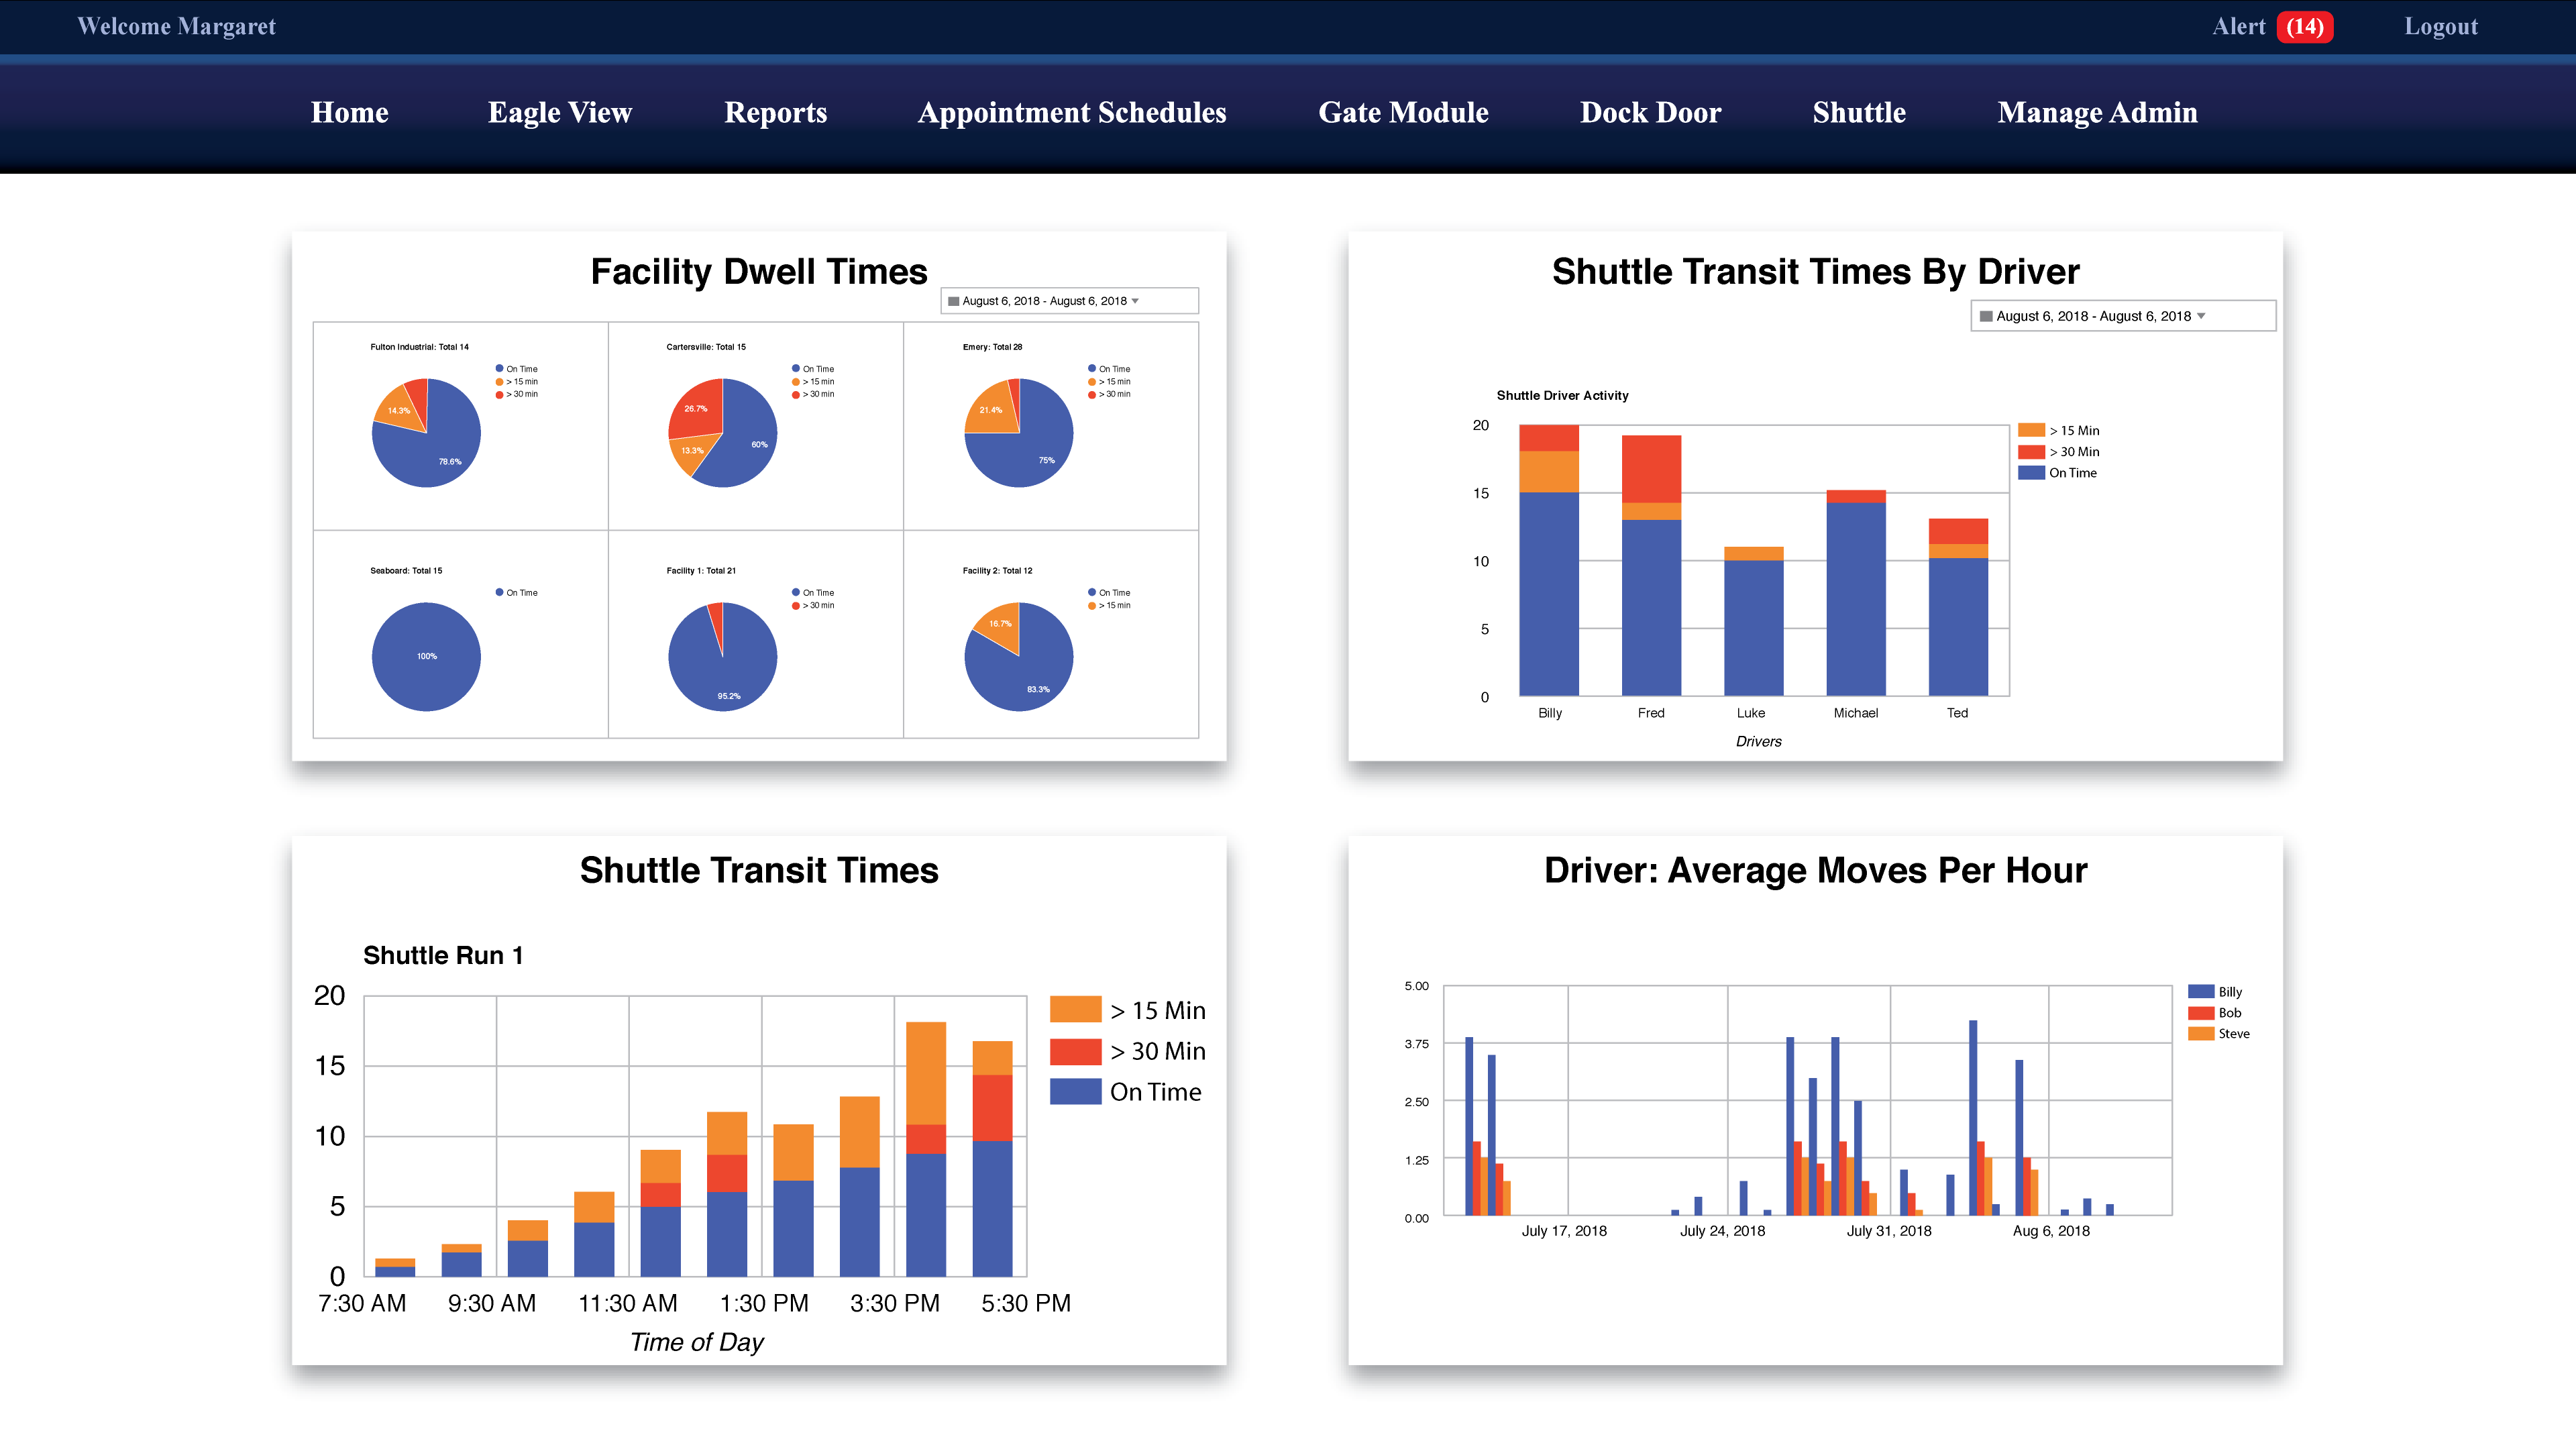 YMS dashboard showing facility dwell times, shuttle transit times by driver, shuttle transit times, and average moves per hour